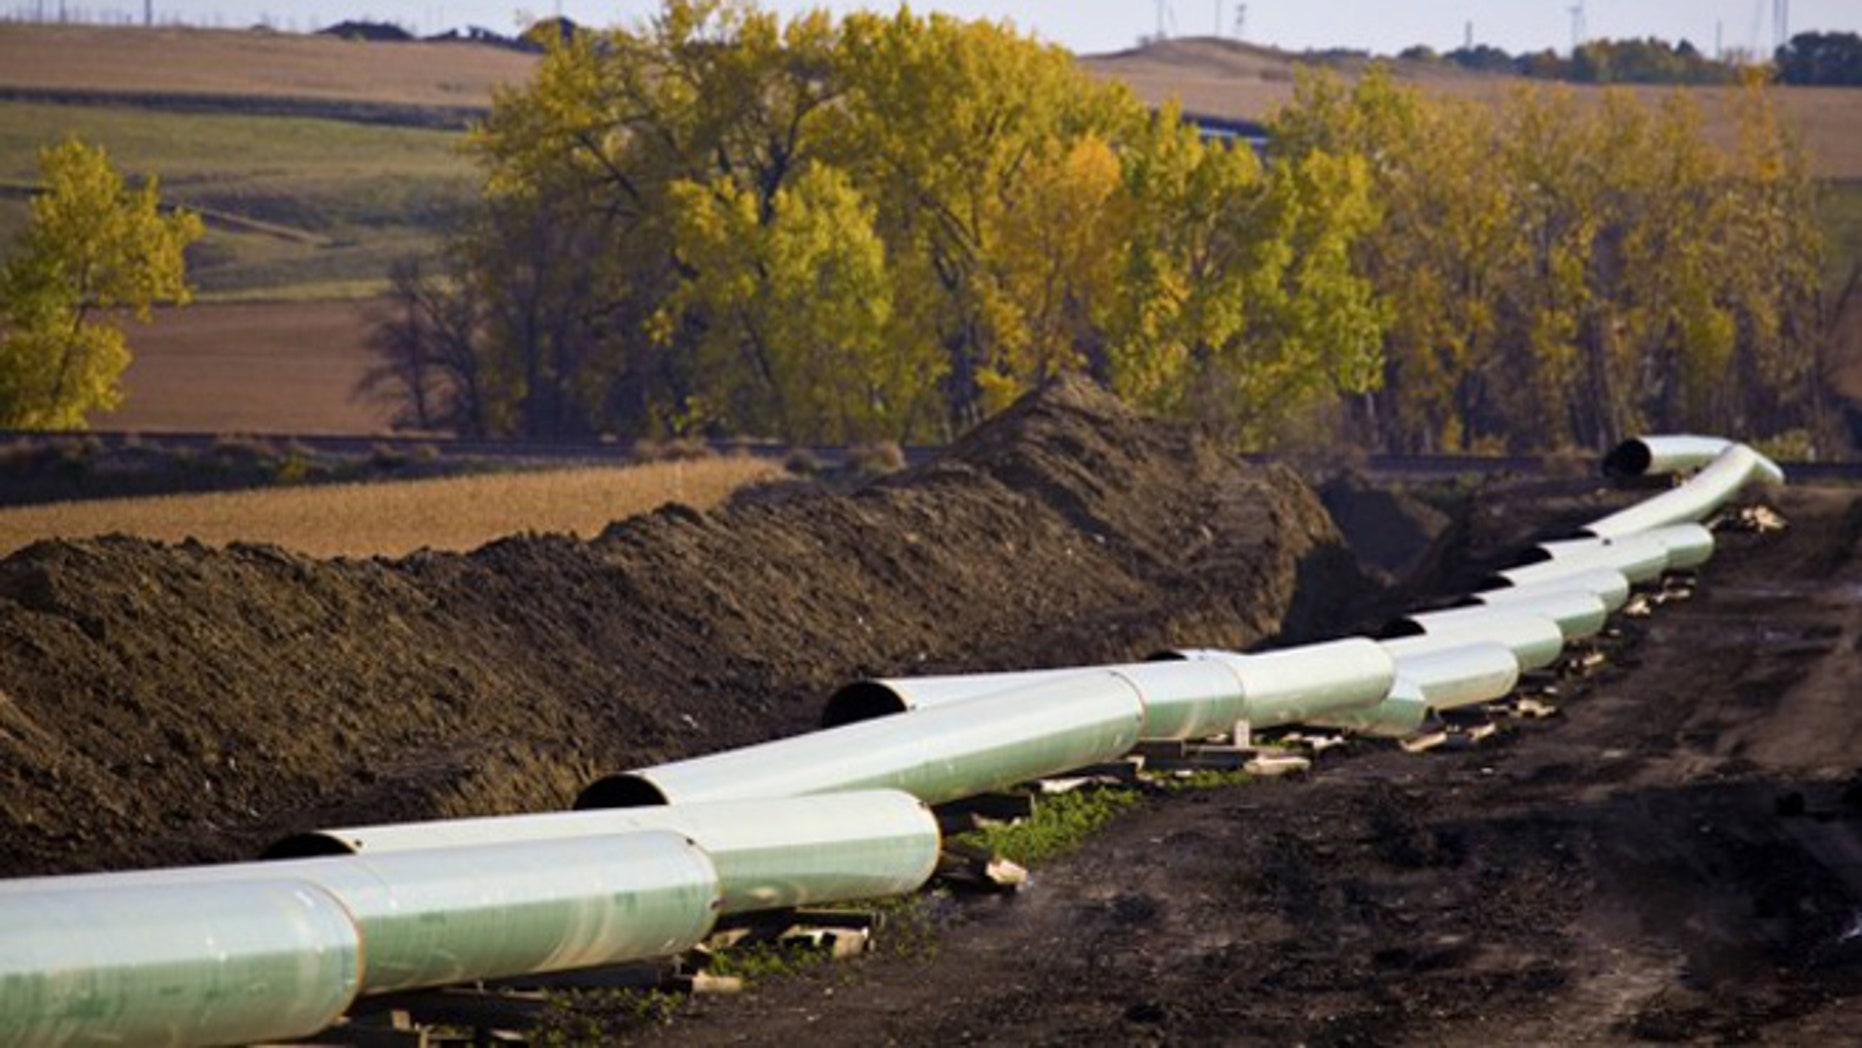 Shown here is a section of the Keystone Pipeline in North Dakota.